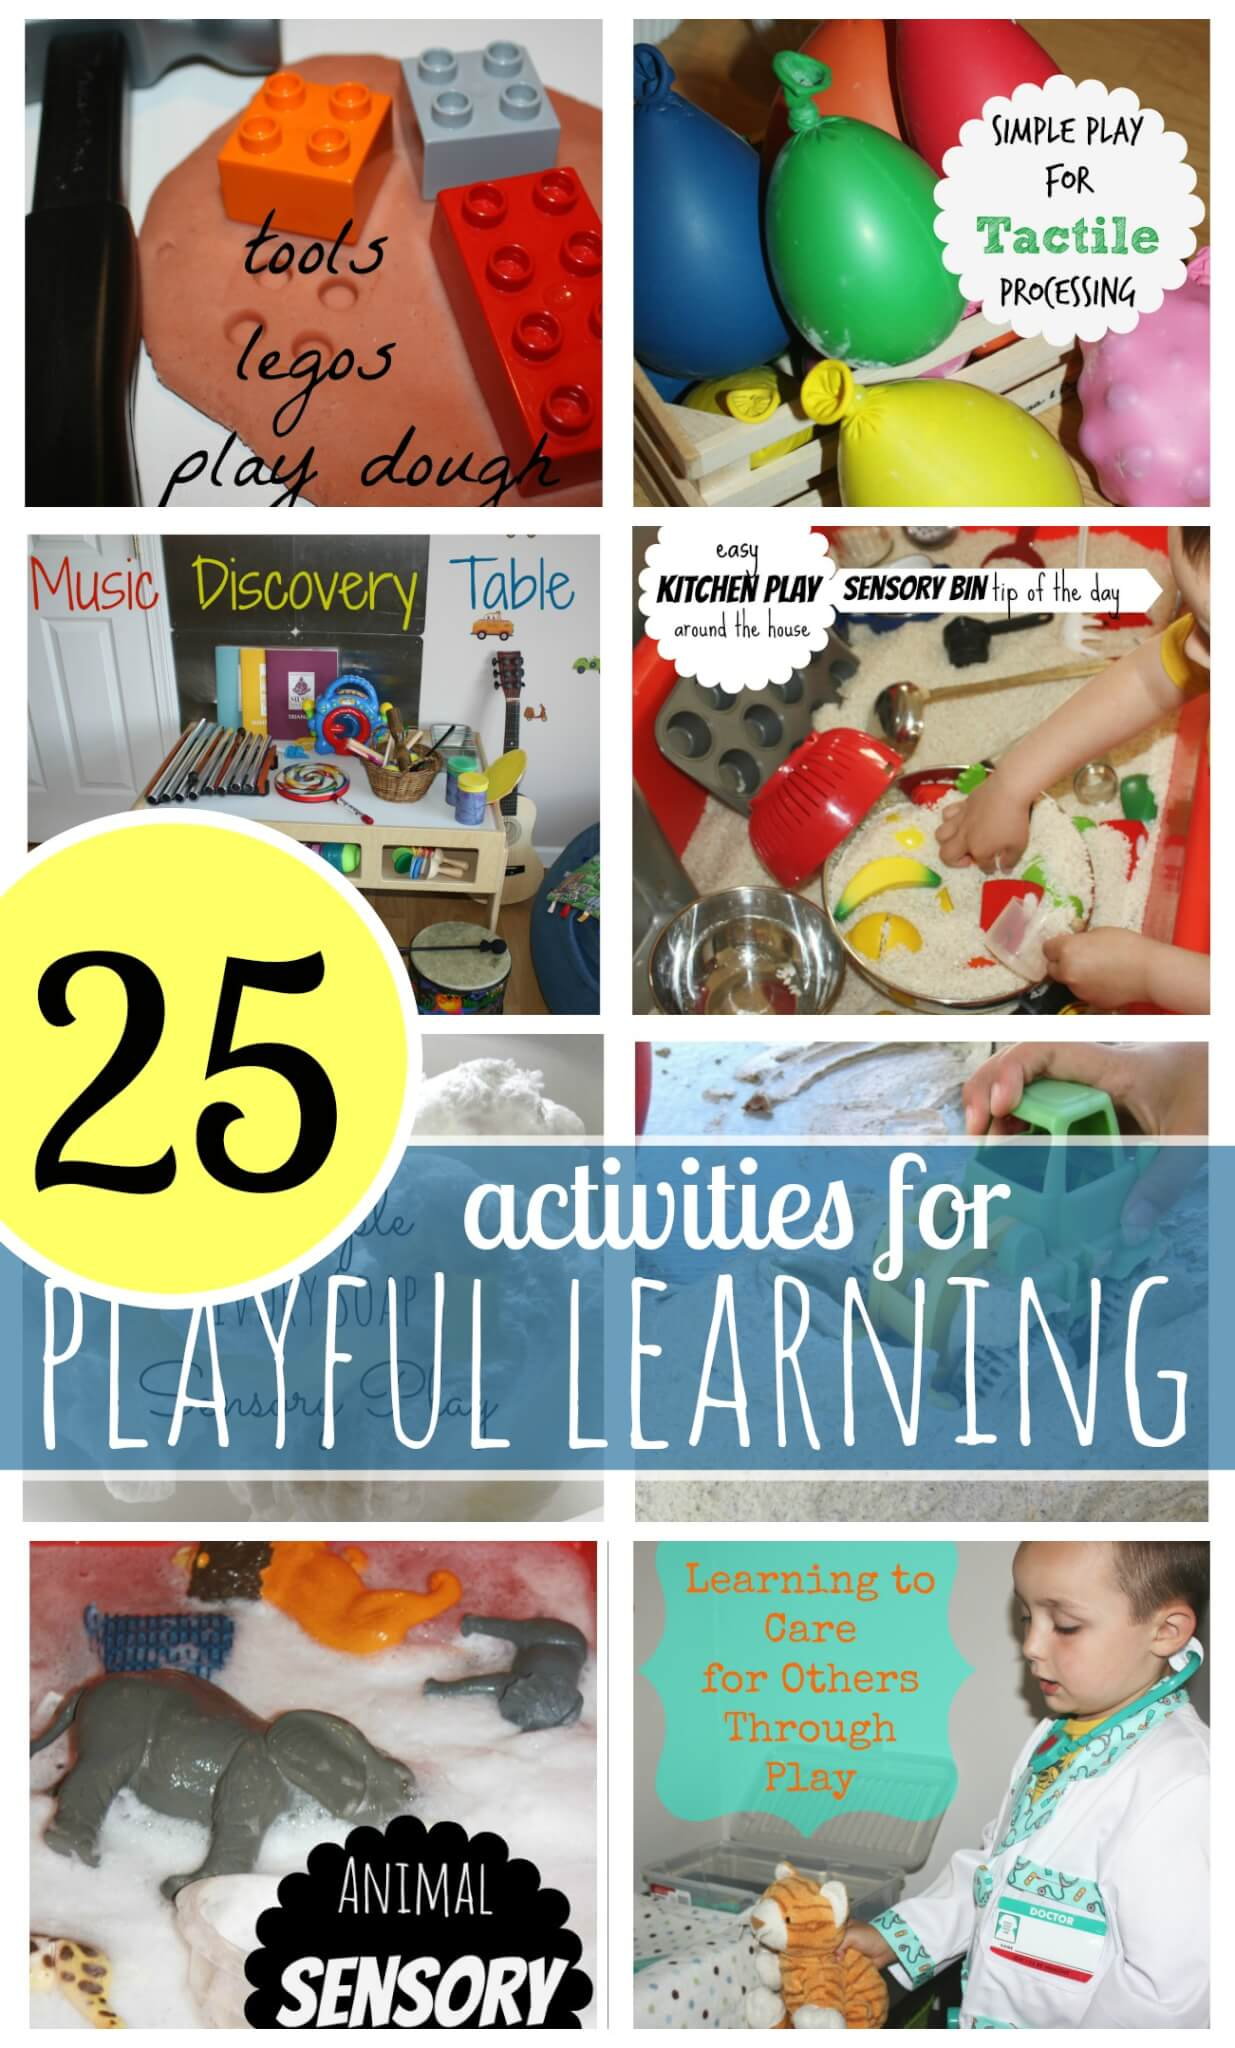 Playful Learning Preschool Activities